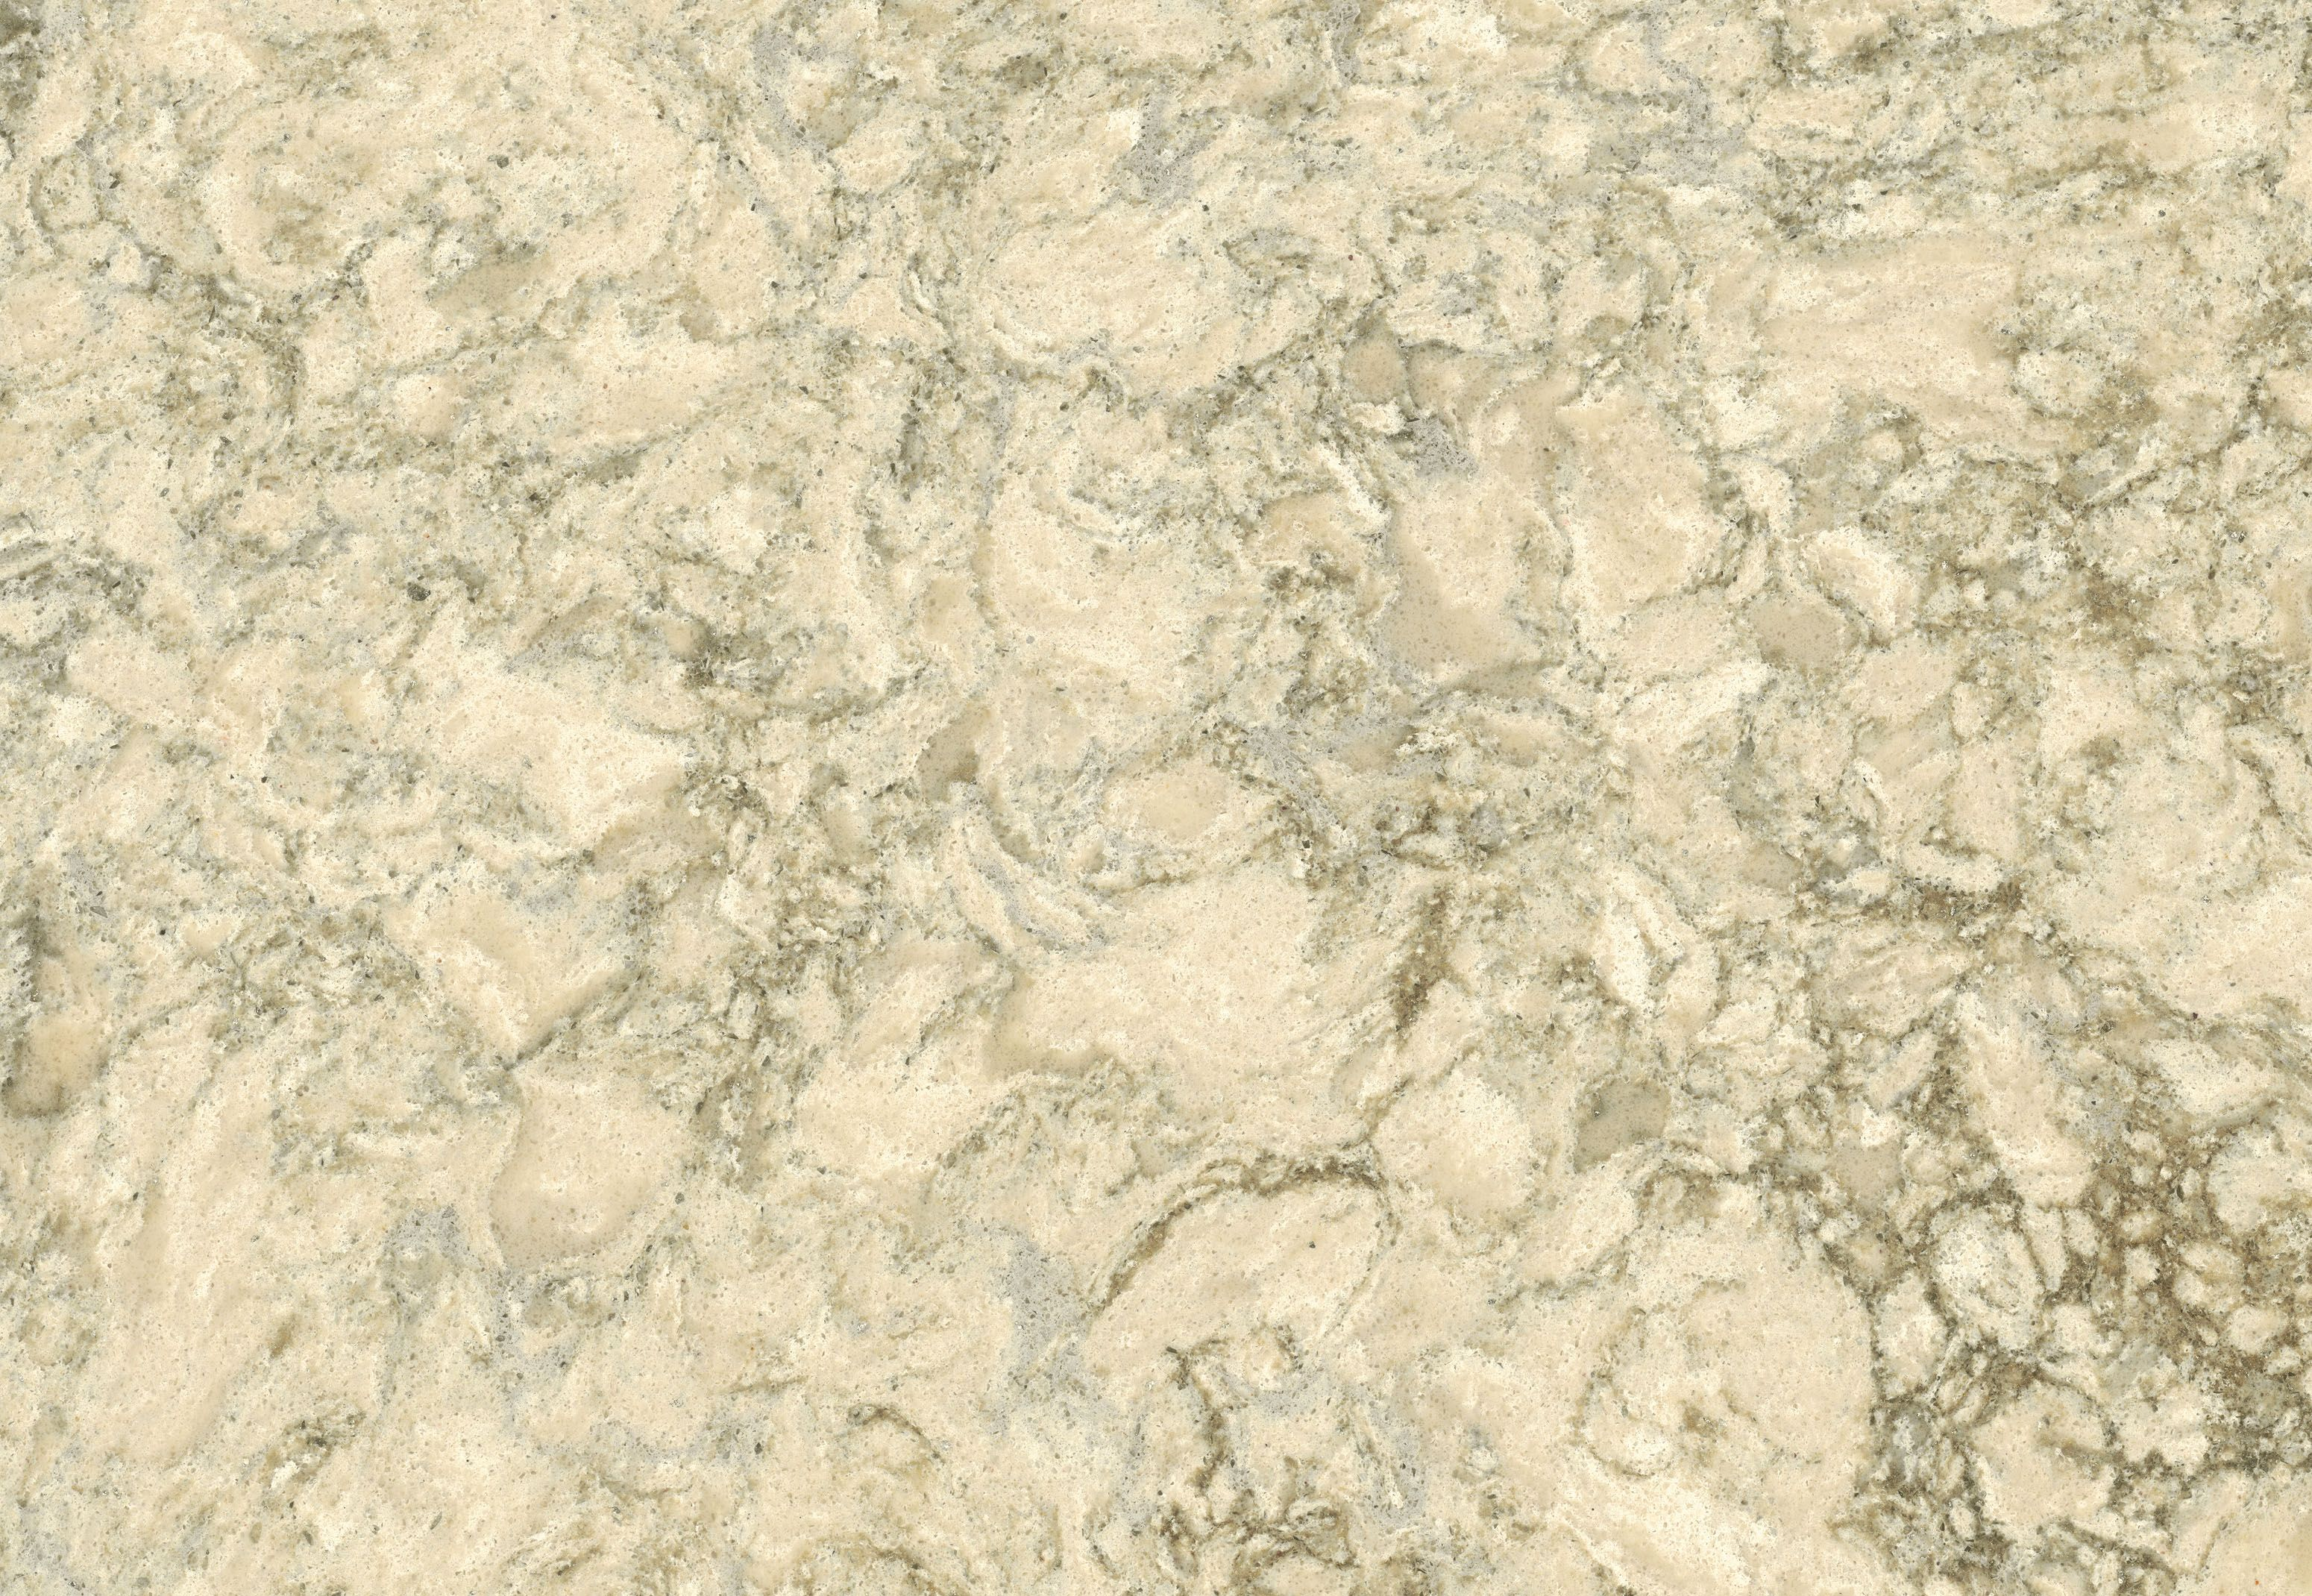 New Design from cambriaquartz Berwyn the new countertops